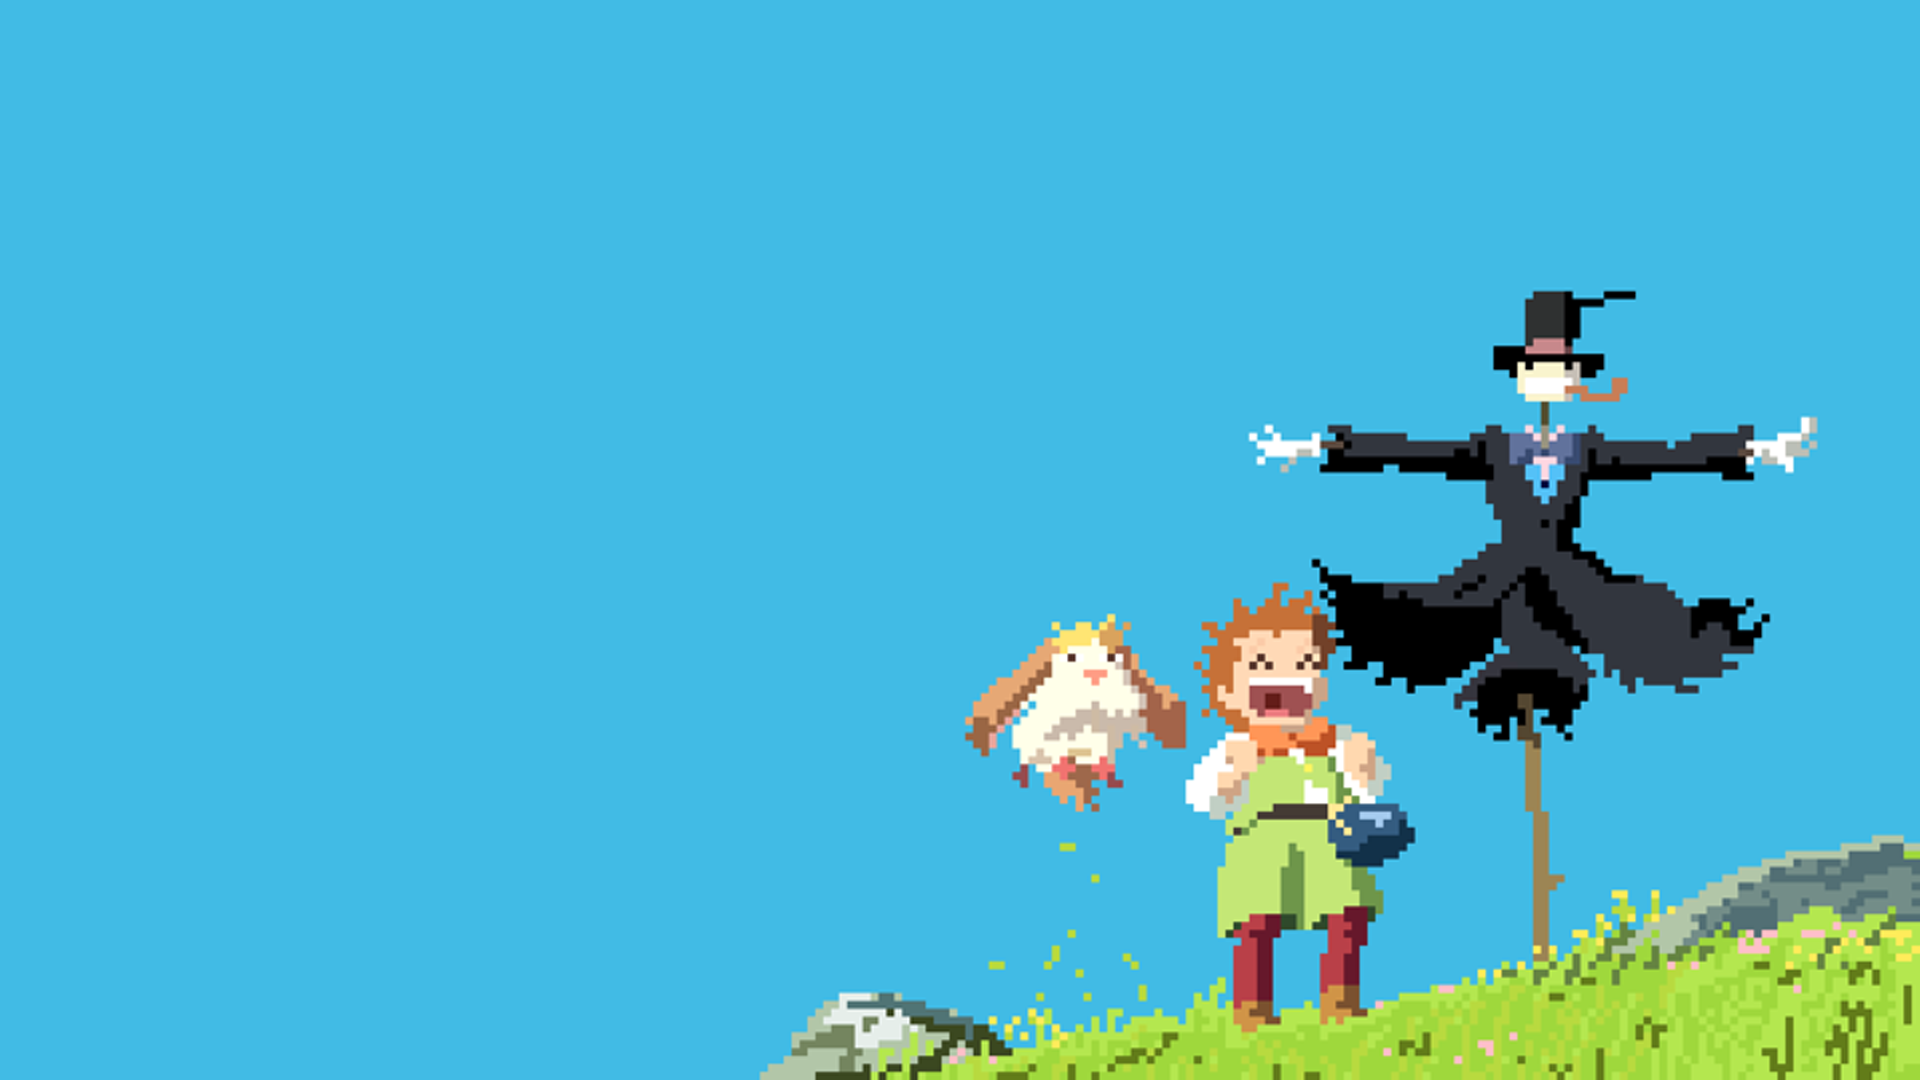 pixel art studio ghibli howl's moving castle pixels